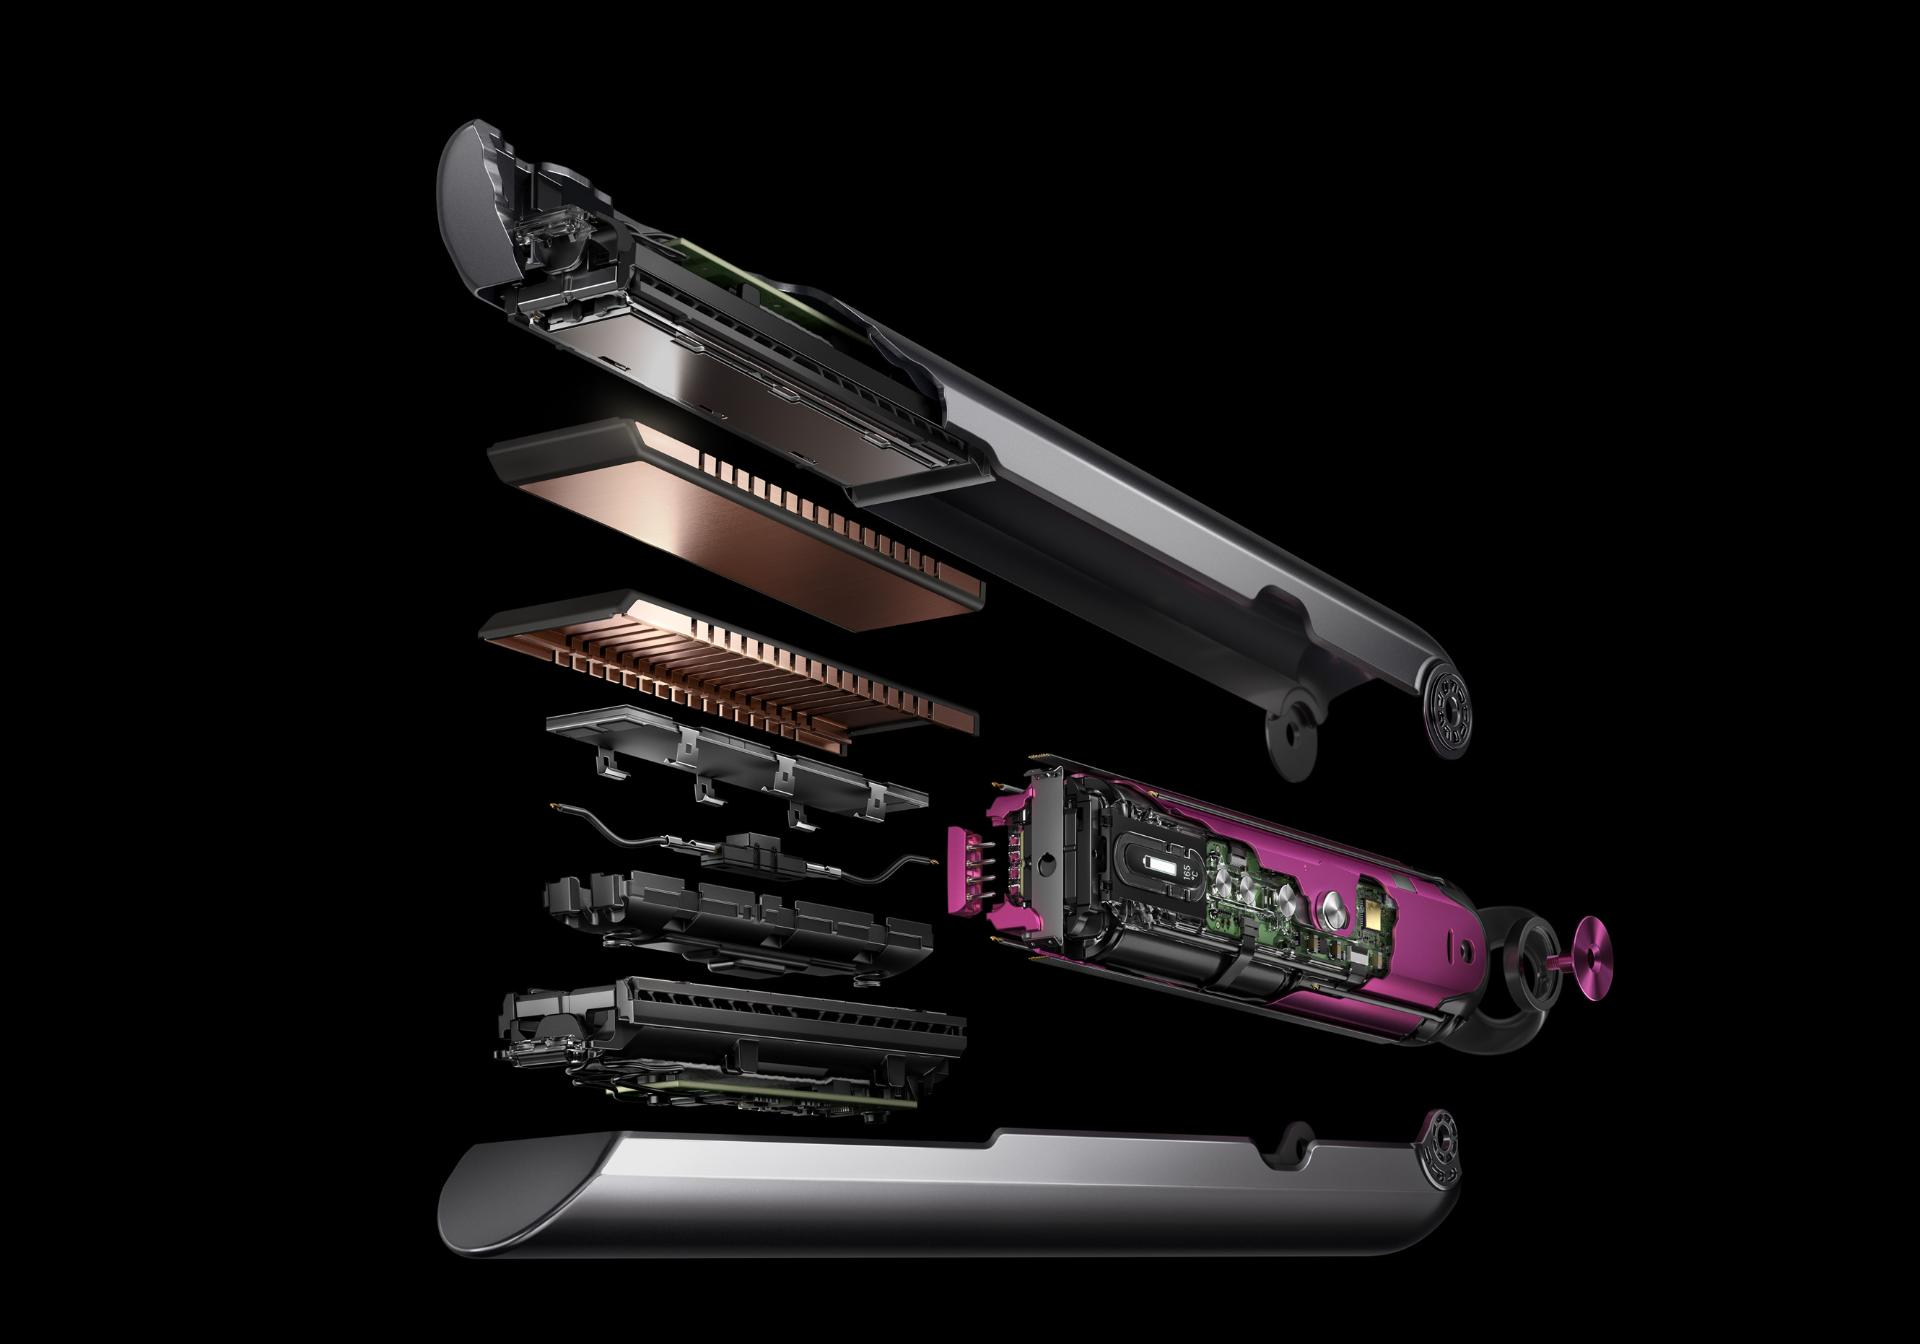 Image of the Dyson Corrale™ straightener opening up with all of its technology inside